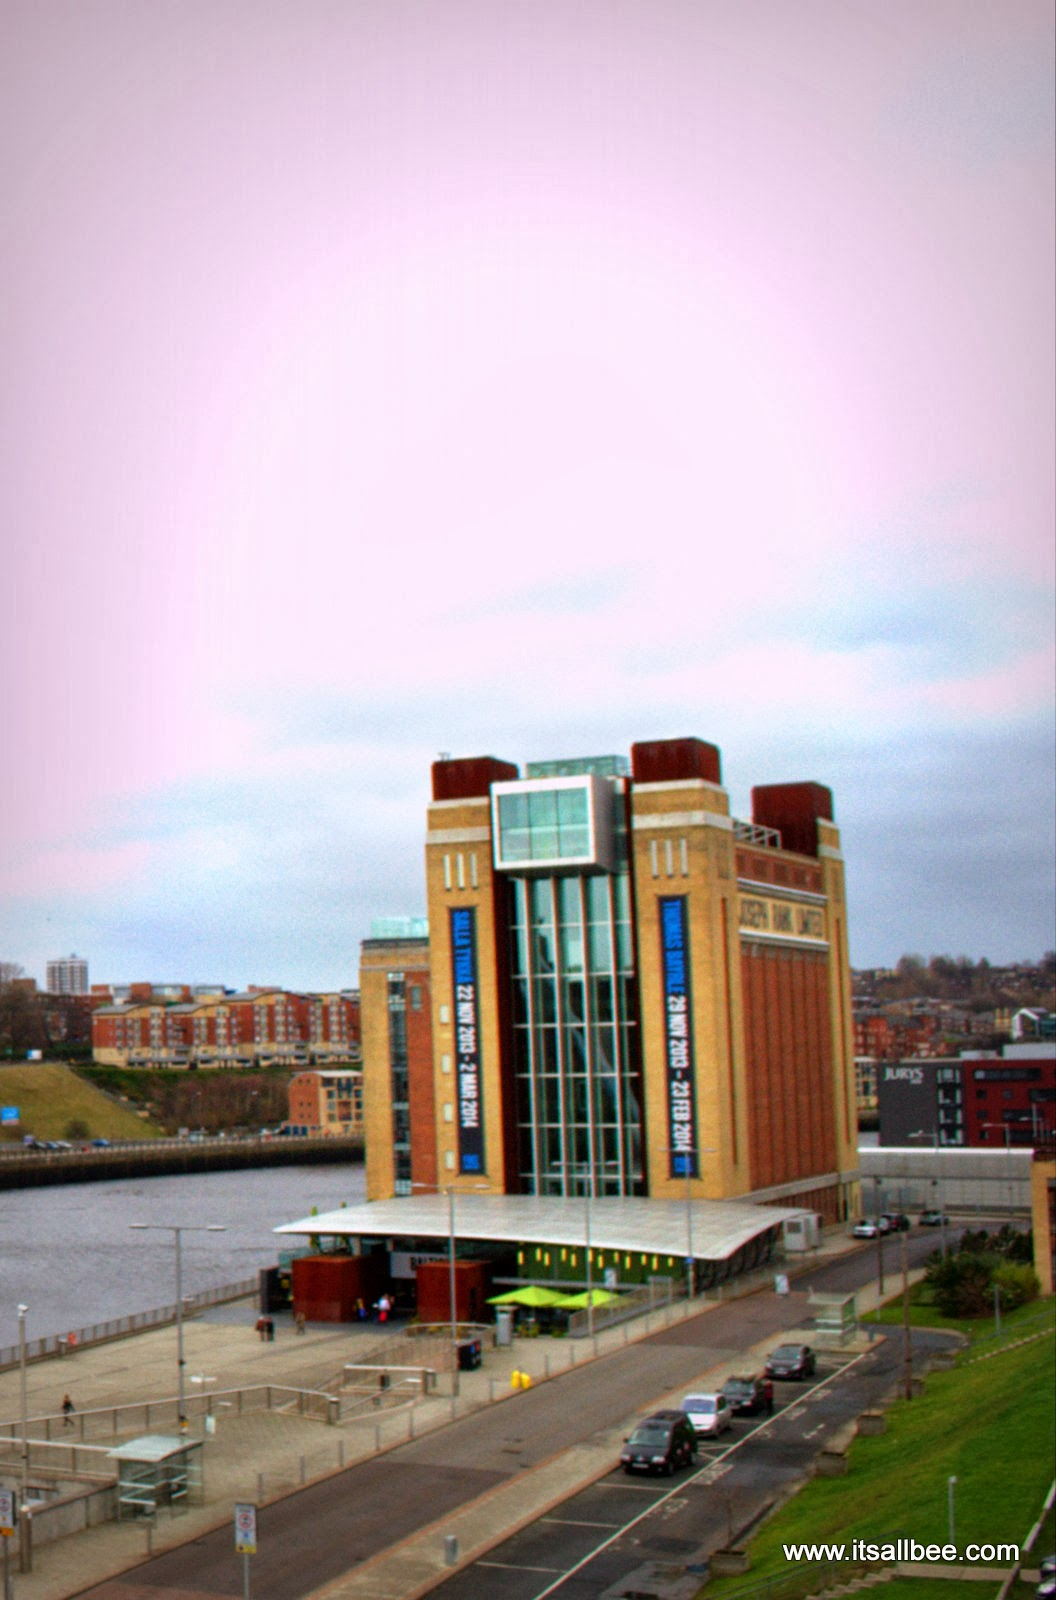 Baltic Centre for Contemporary Arts